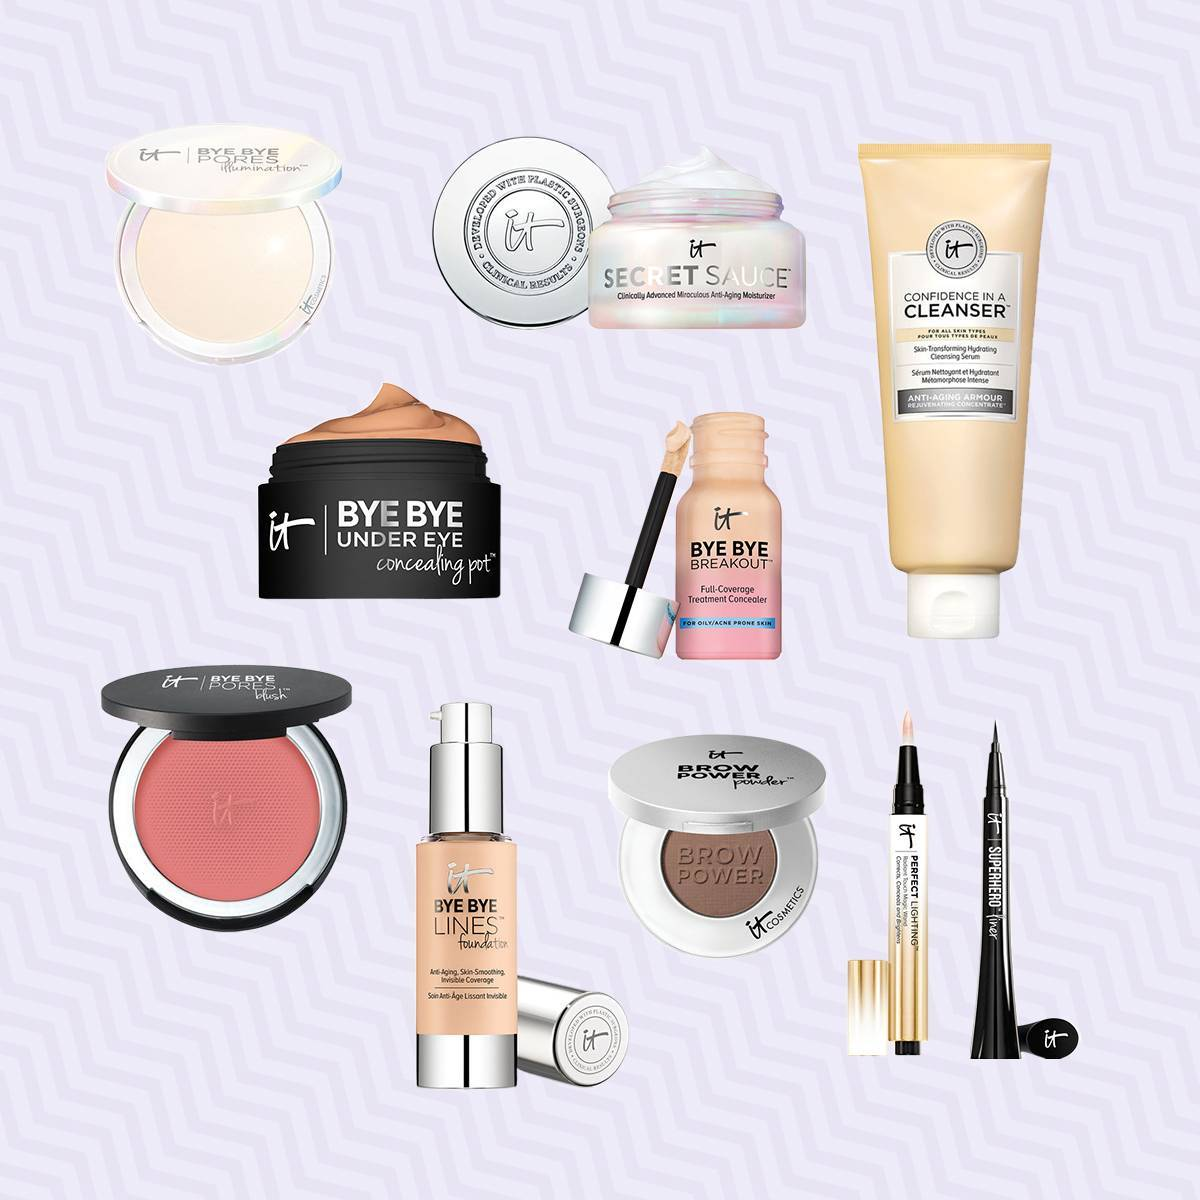 10 Best New Products From IT Cosmetics